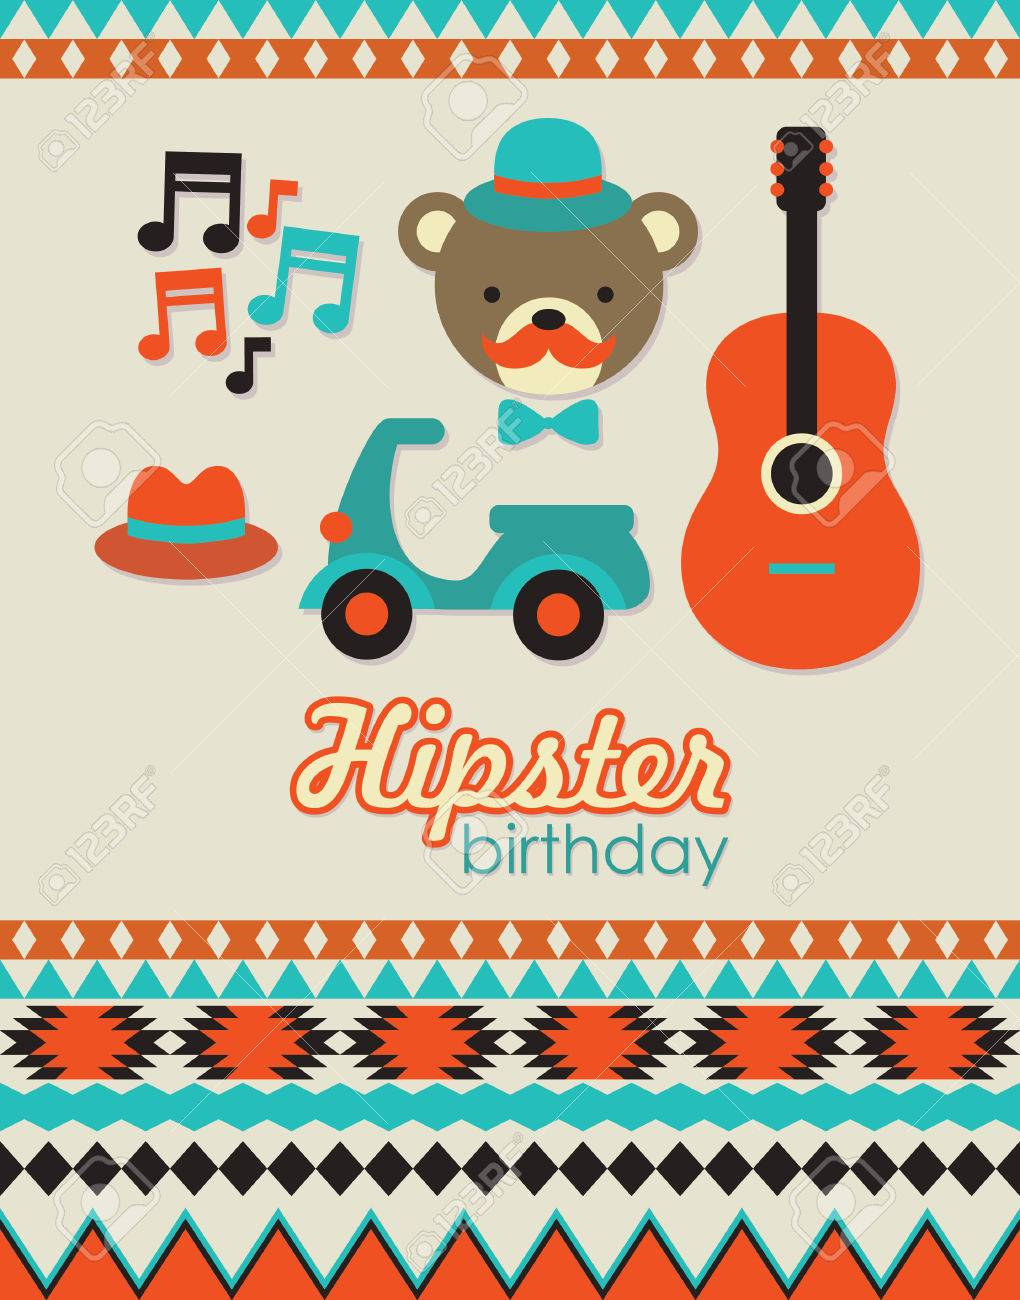 Hipster Birthday Card Design Vector Illustration Royalty Free – Hipster Birthday Cards